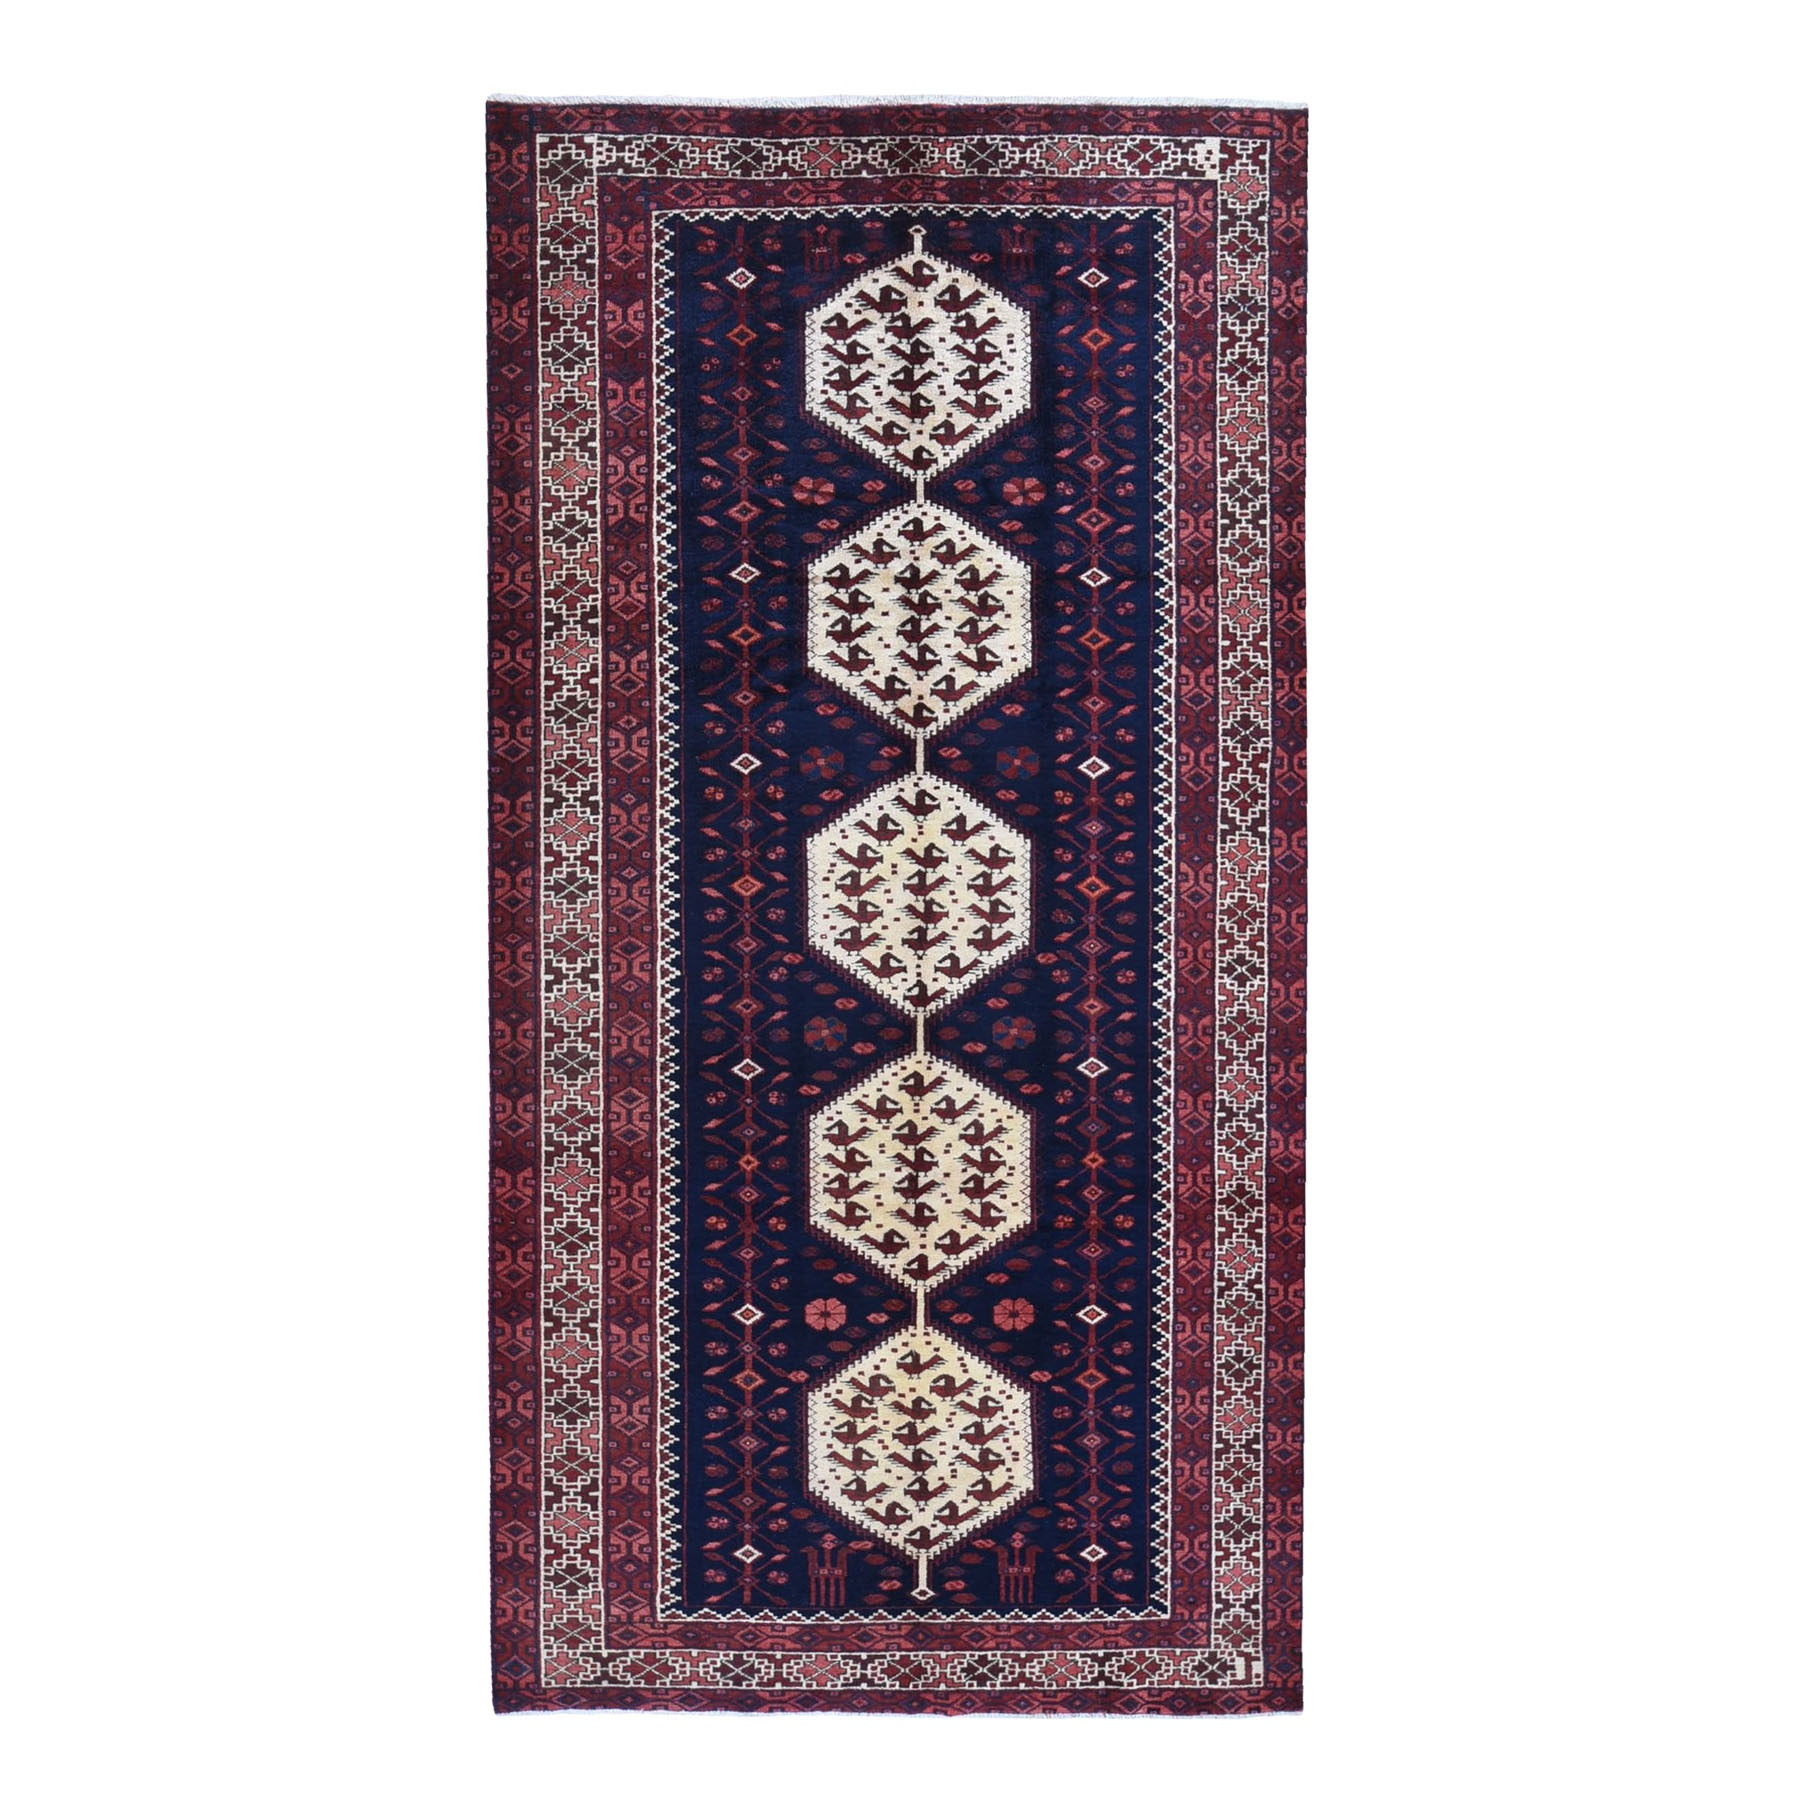 5'x10' Vintage Persian Malayer Serrated Medallions with Animal Figurines Multi Border Pure Wool Hand Knotted Oriental Rug